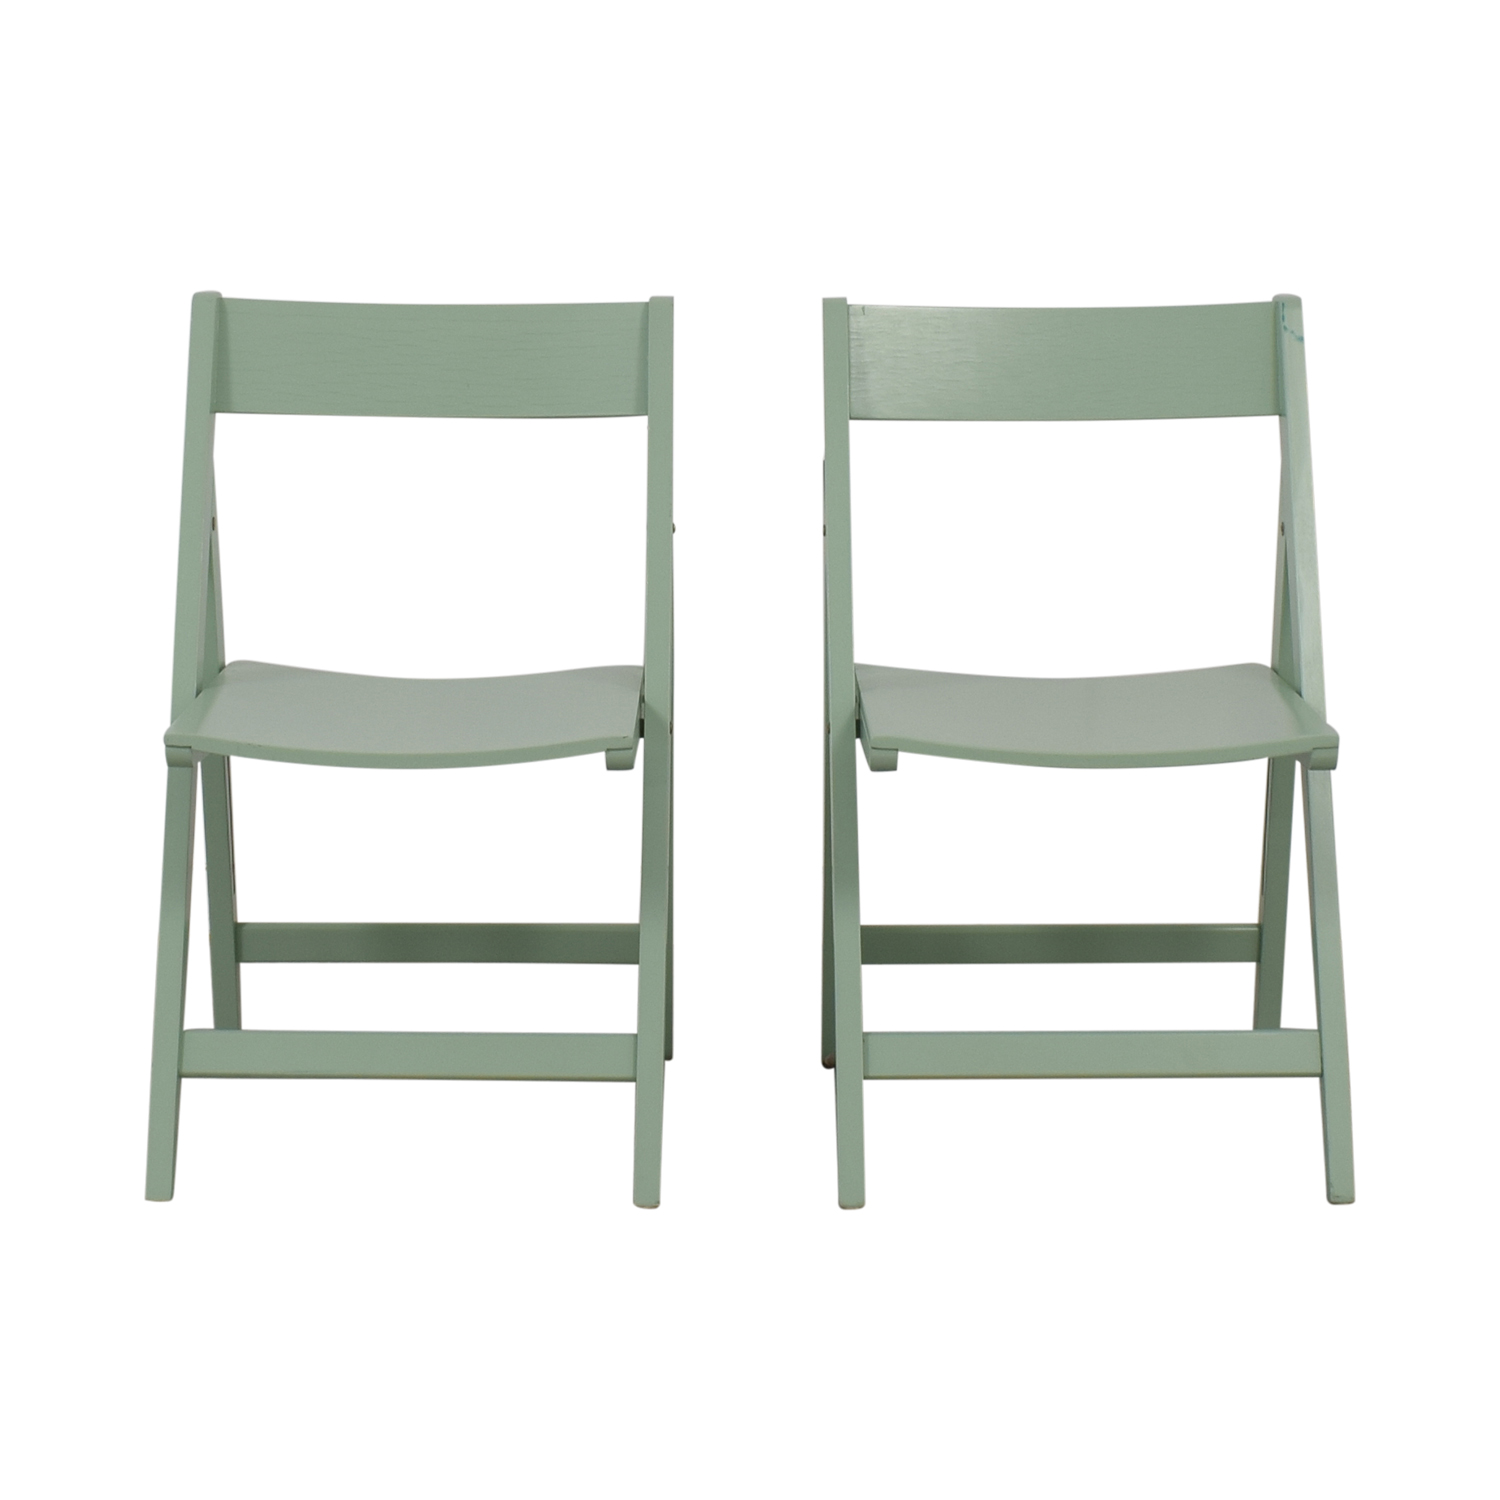 Mint Green Folding Chairs discount